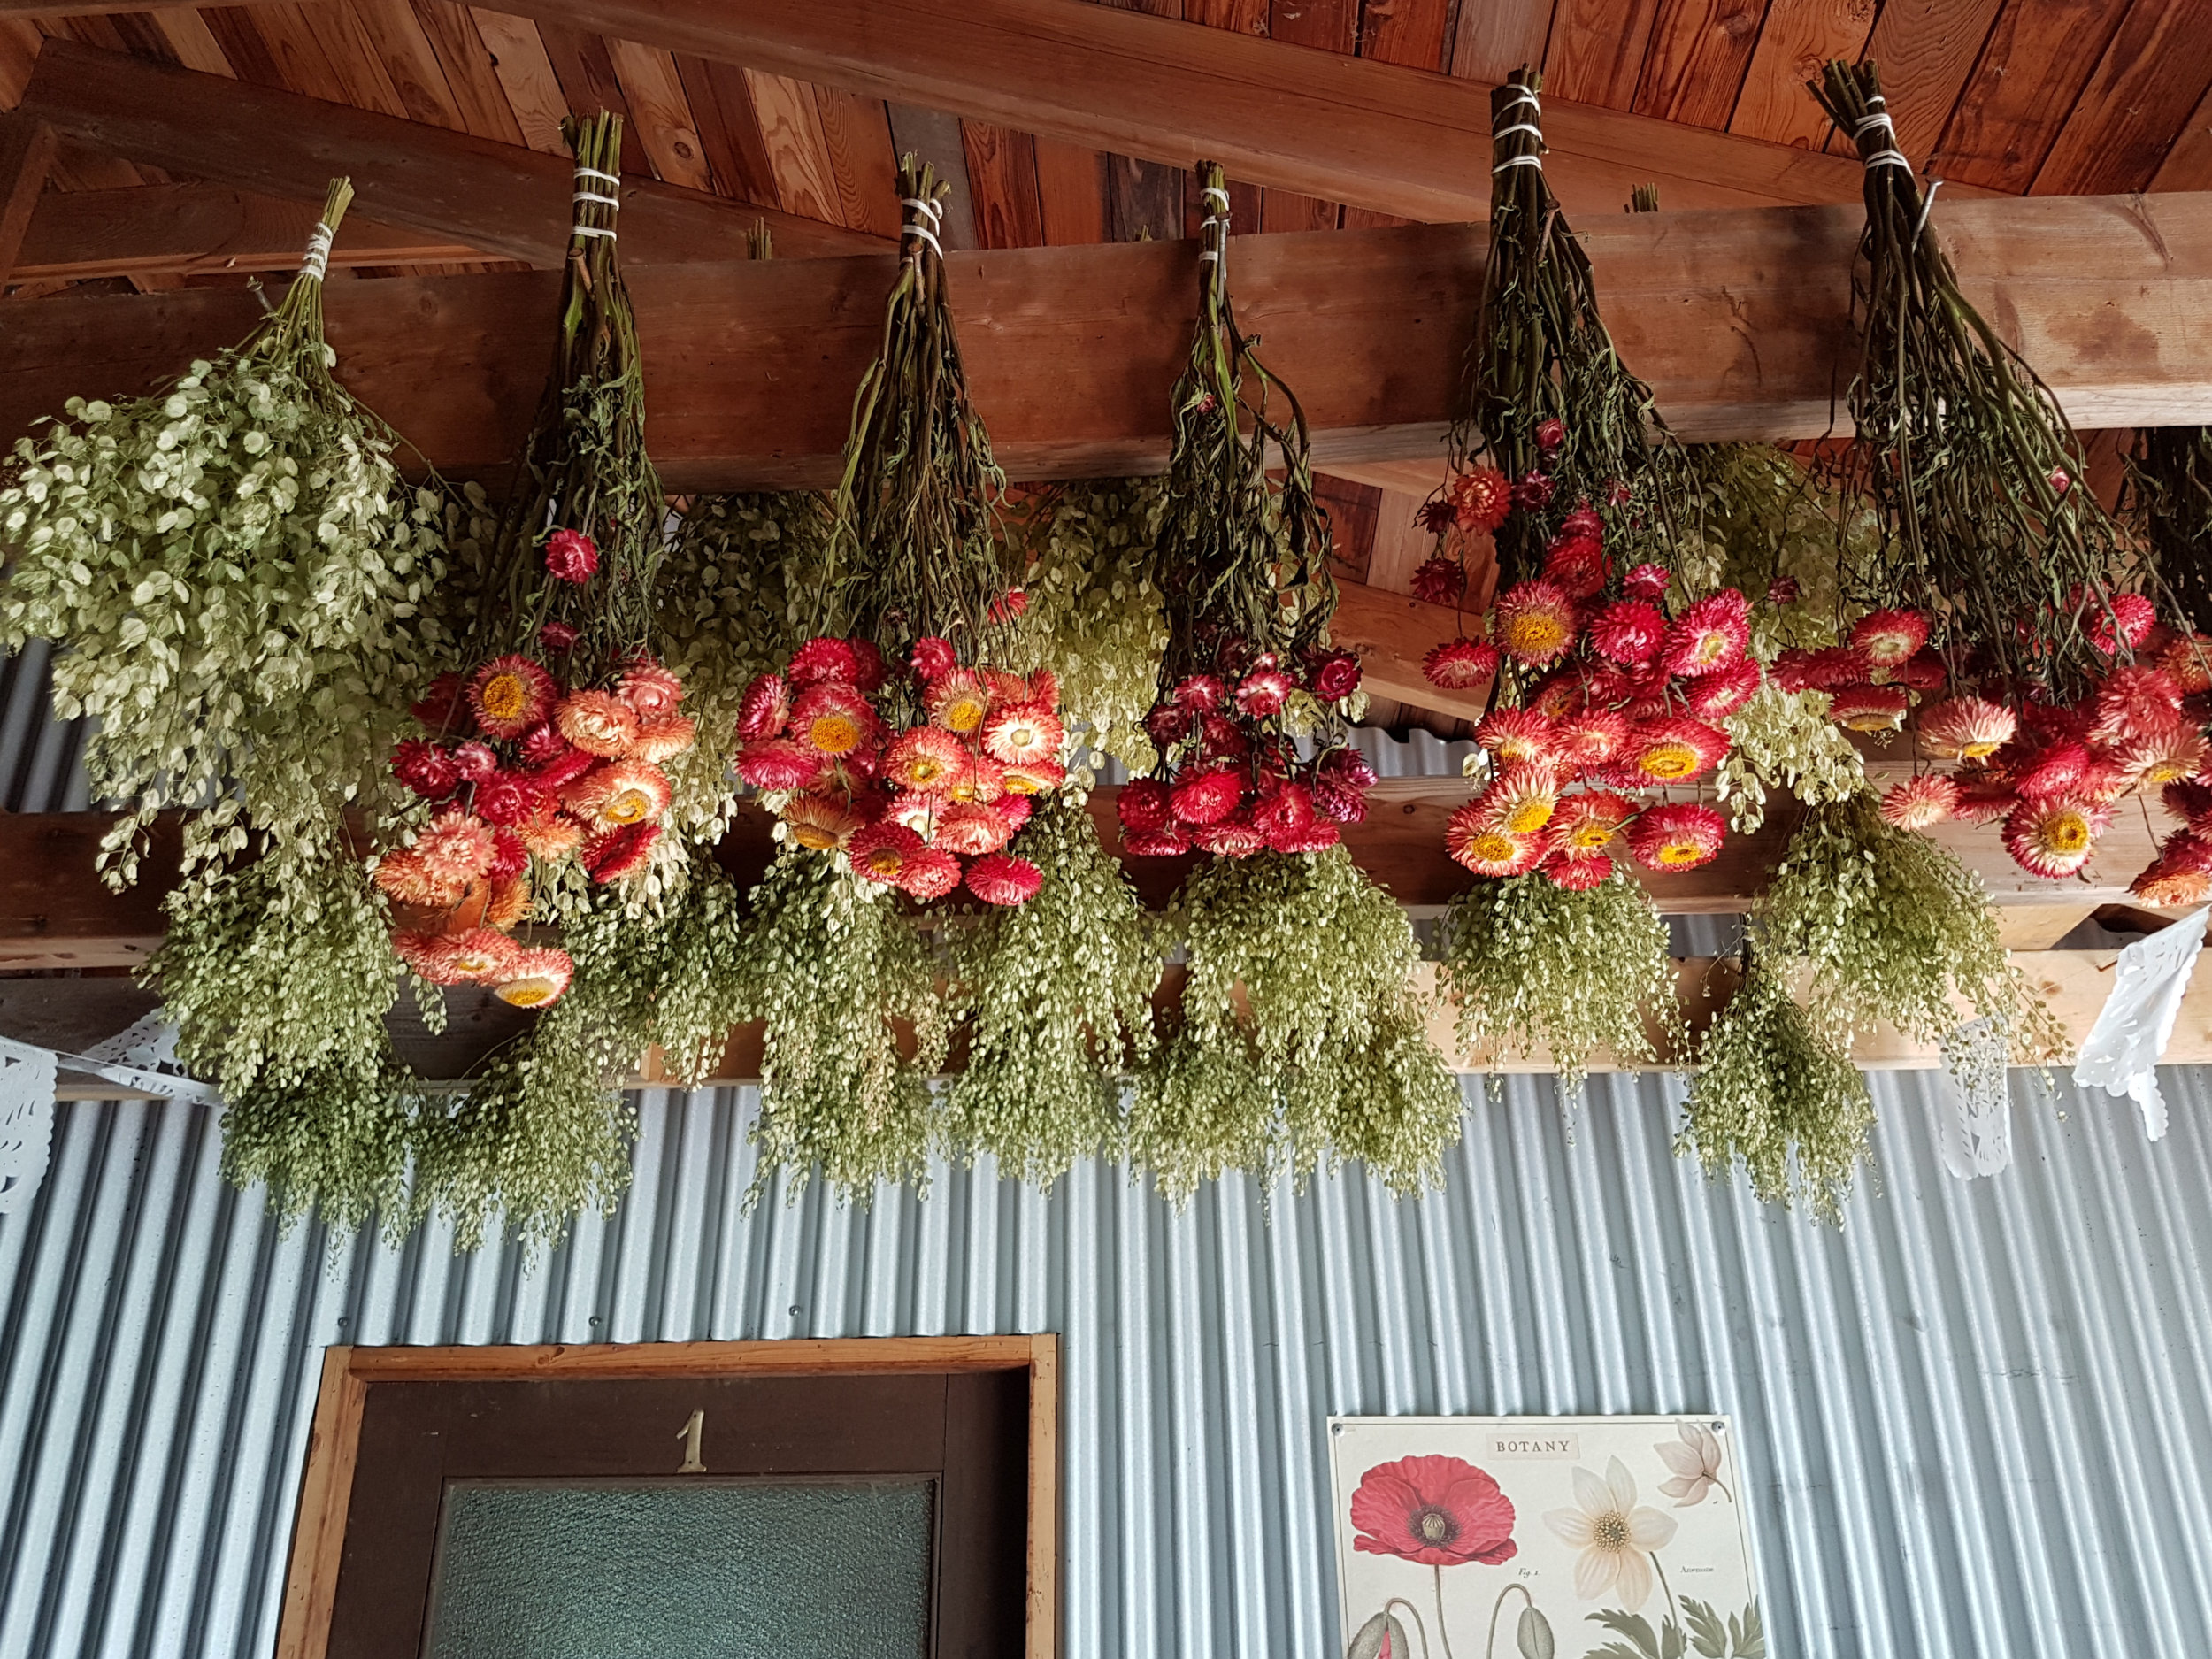 Drying flowers can be as simple as making small bunches and hanging them to dry in a warm, dark space.